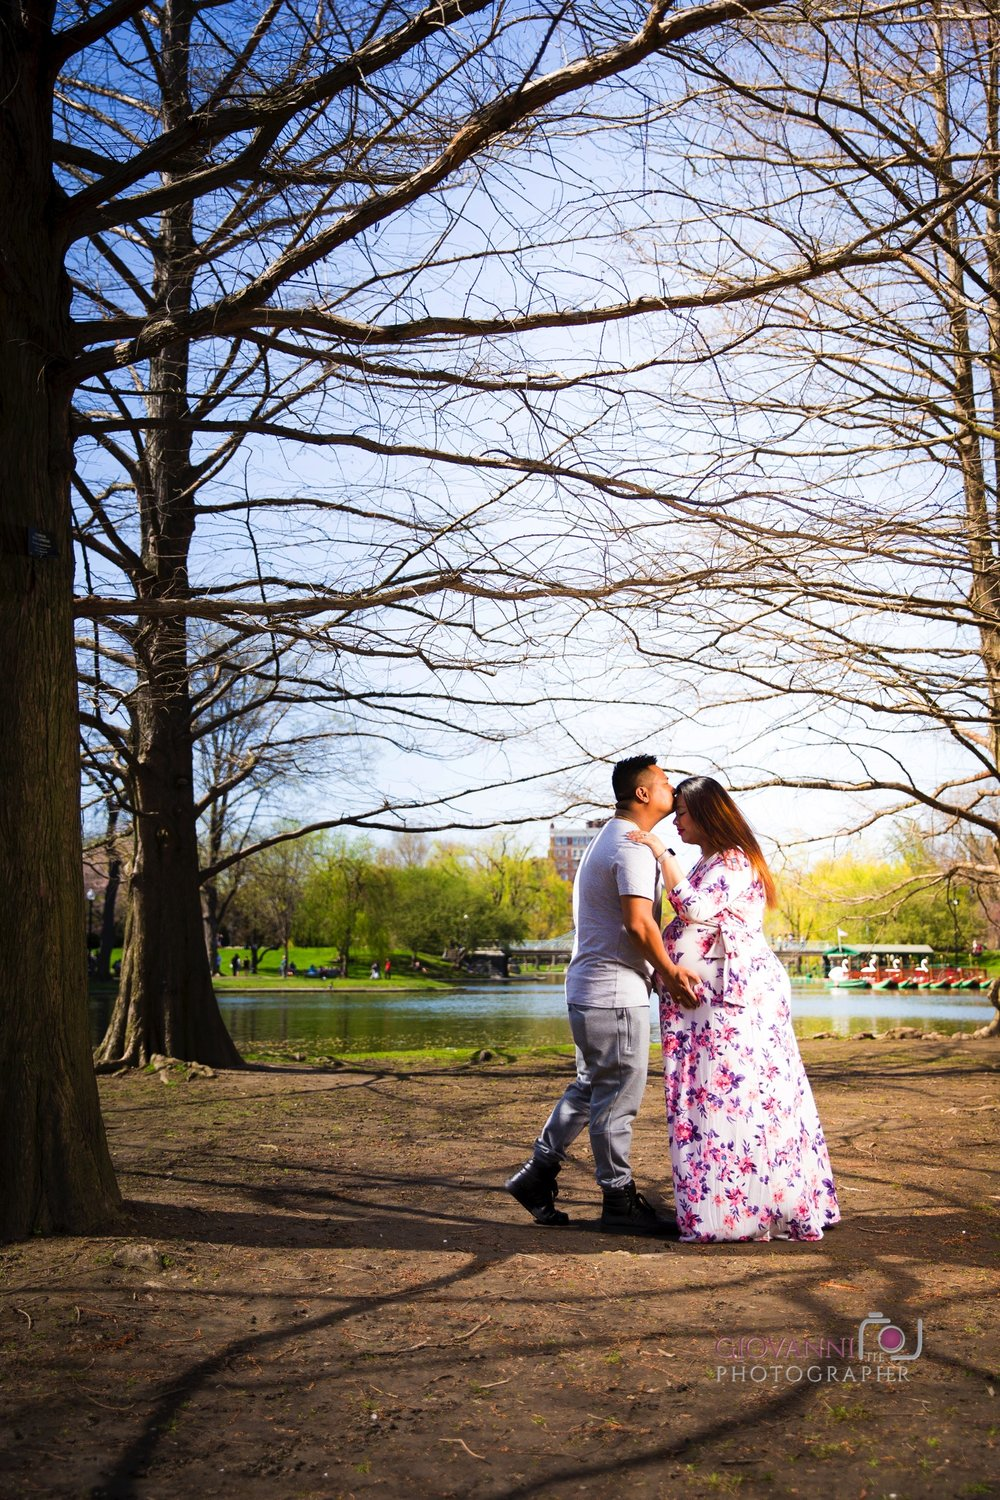 8C2A5918 Giovanni The Photographer Boston Engagement - Maternity - Newborn Photography Vikrant & Rtunasnet WM 35.jpg